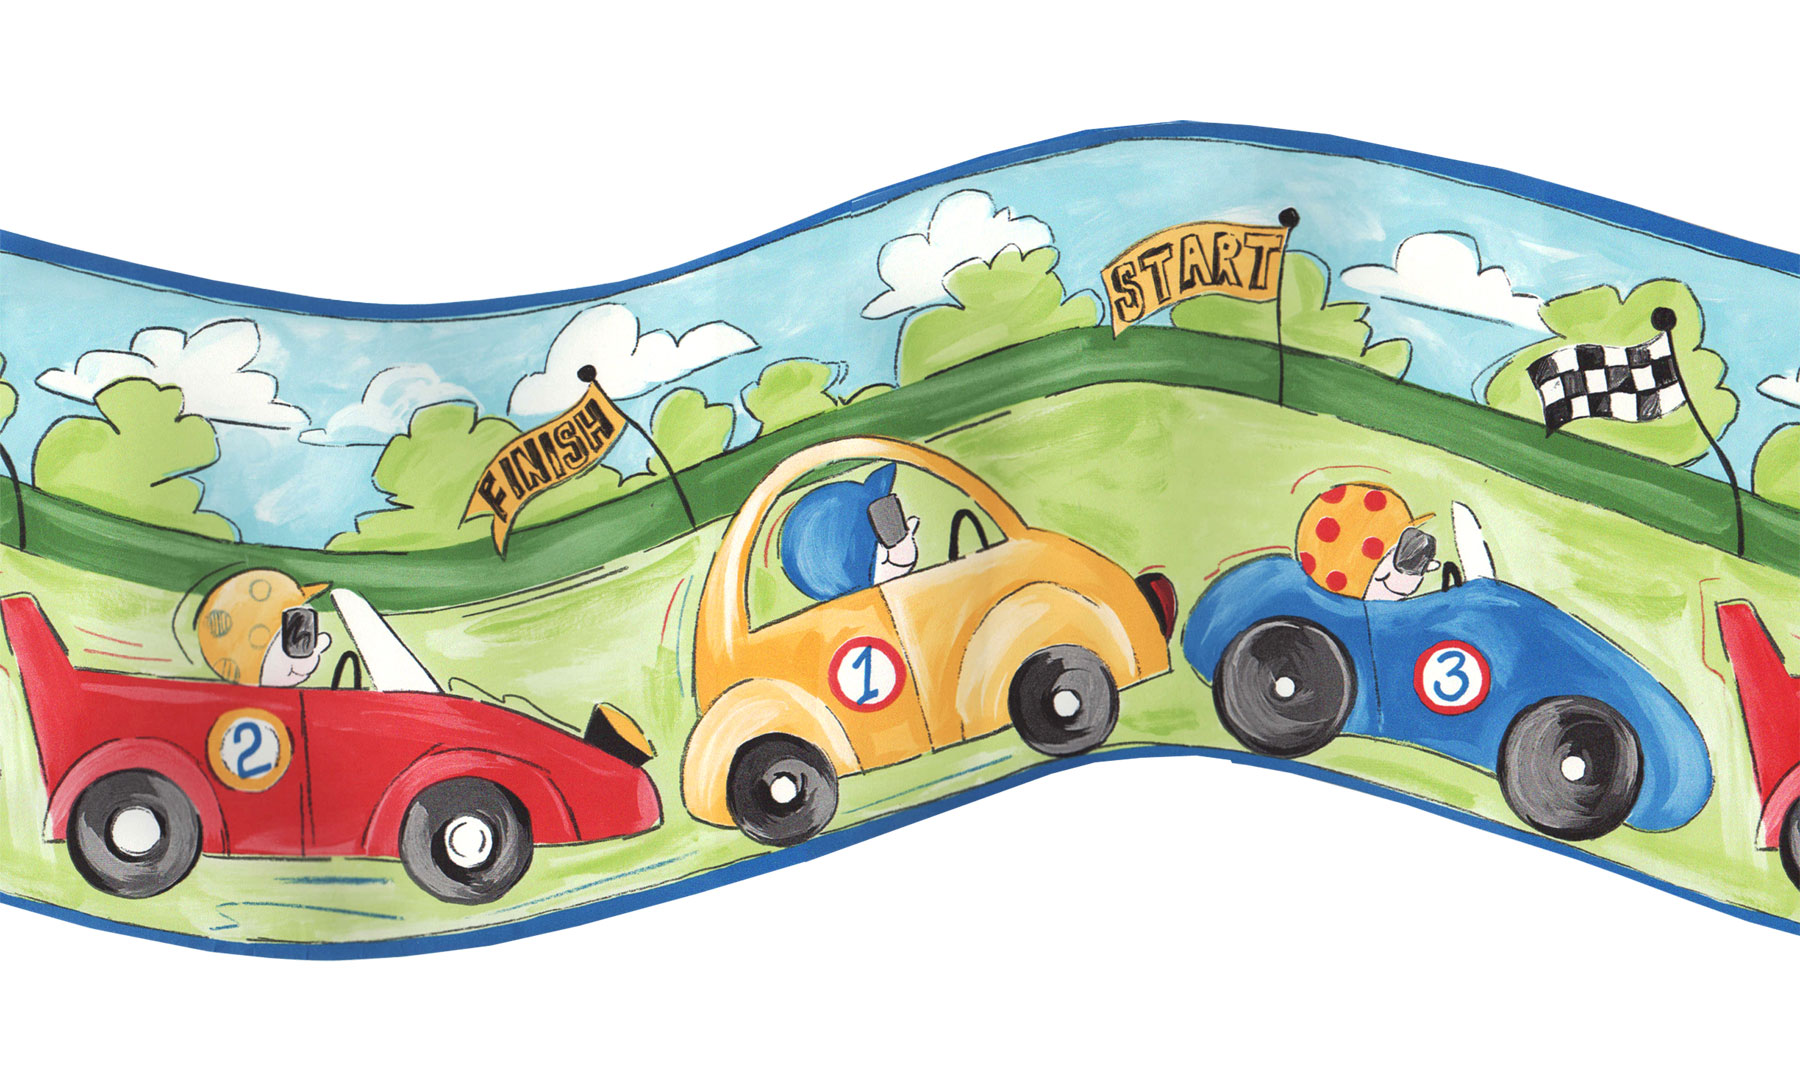 Race Cars Prepasted Wall Border Roll - Curvy Racing Wall Decoration